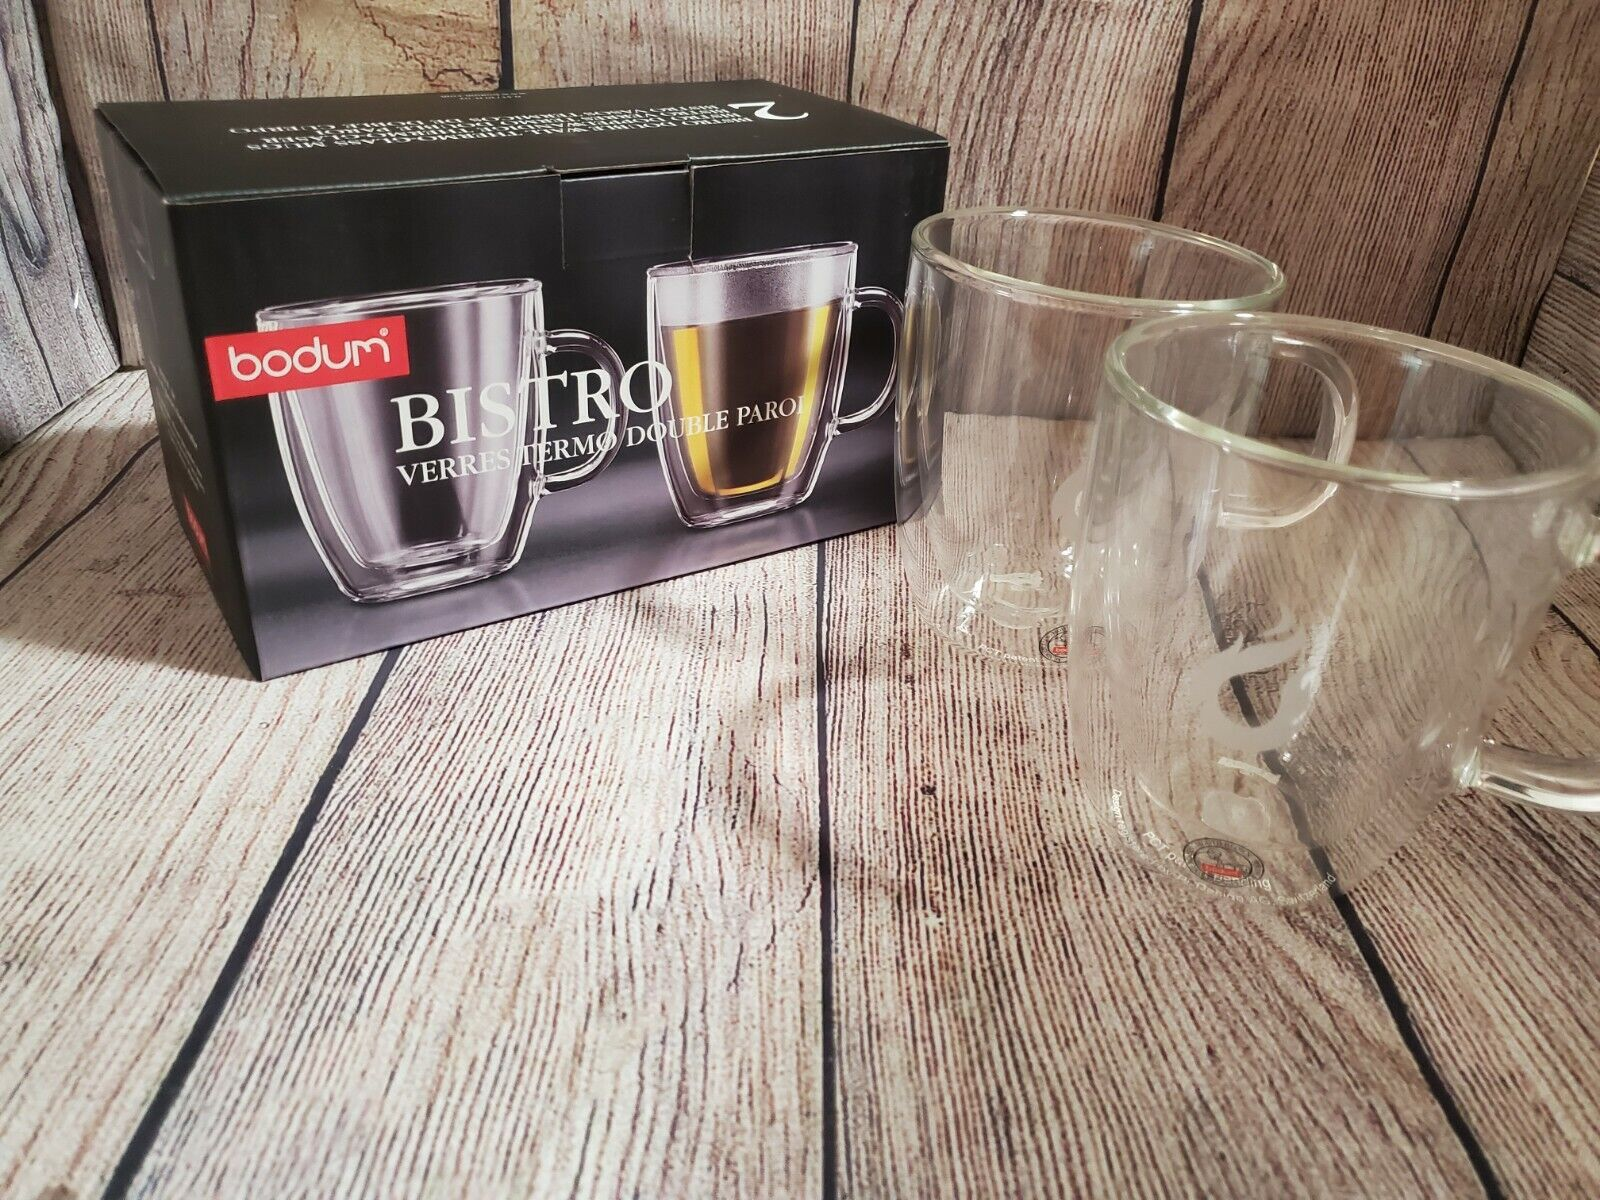 set of 2 Bodum 10604-10US4 Bistro Double Wall Clear 10-ounce Glasses Clear